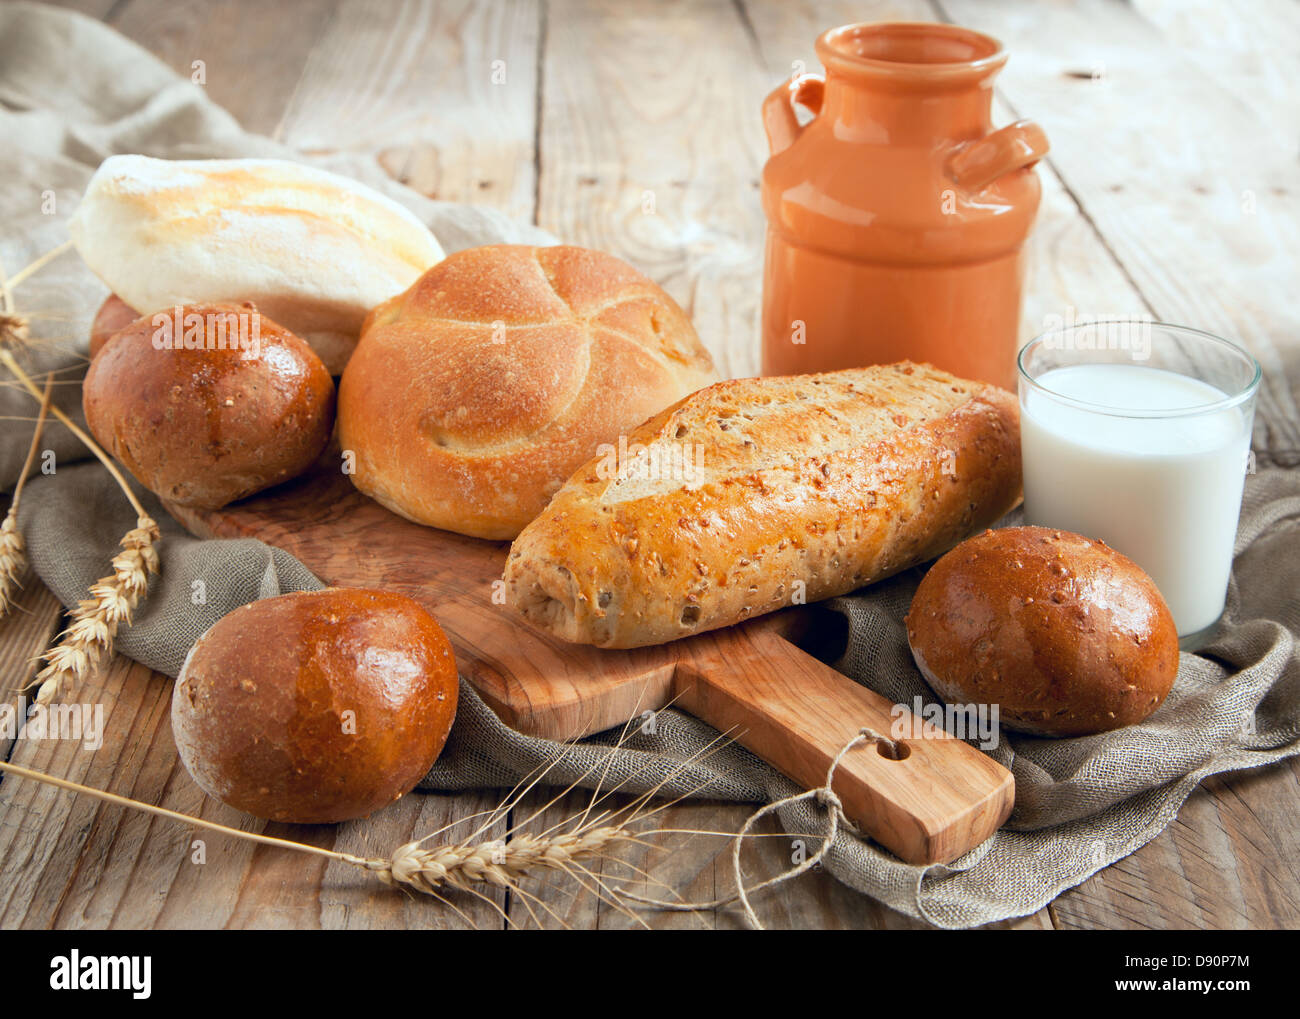 Bakery product assortment with bread loaves and buns - Stock Image